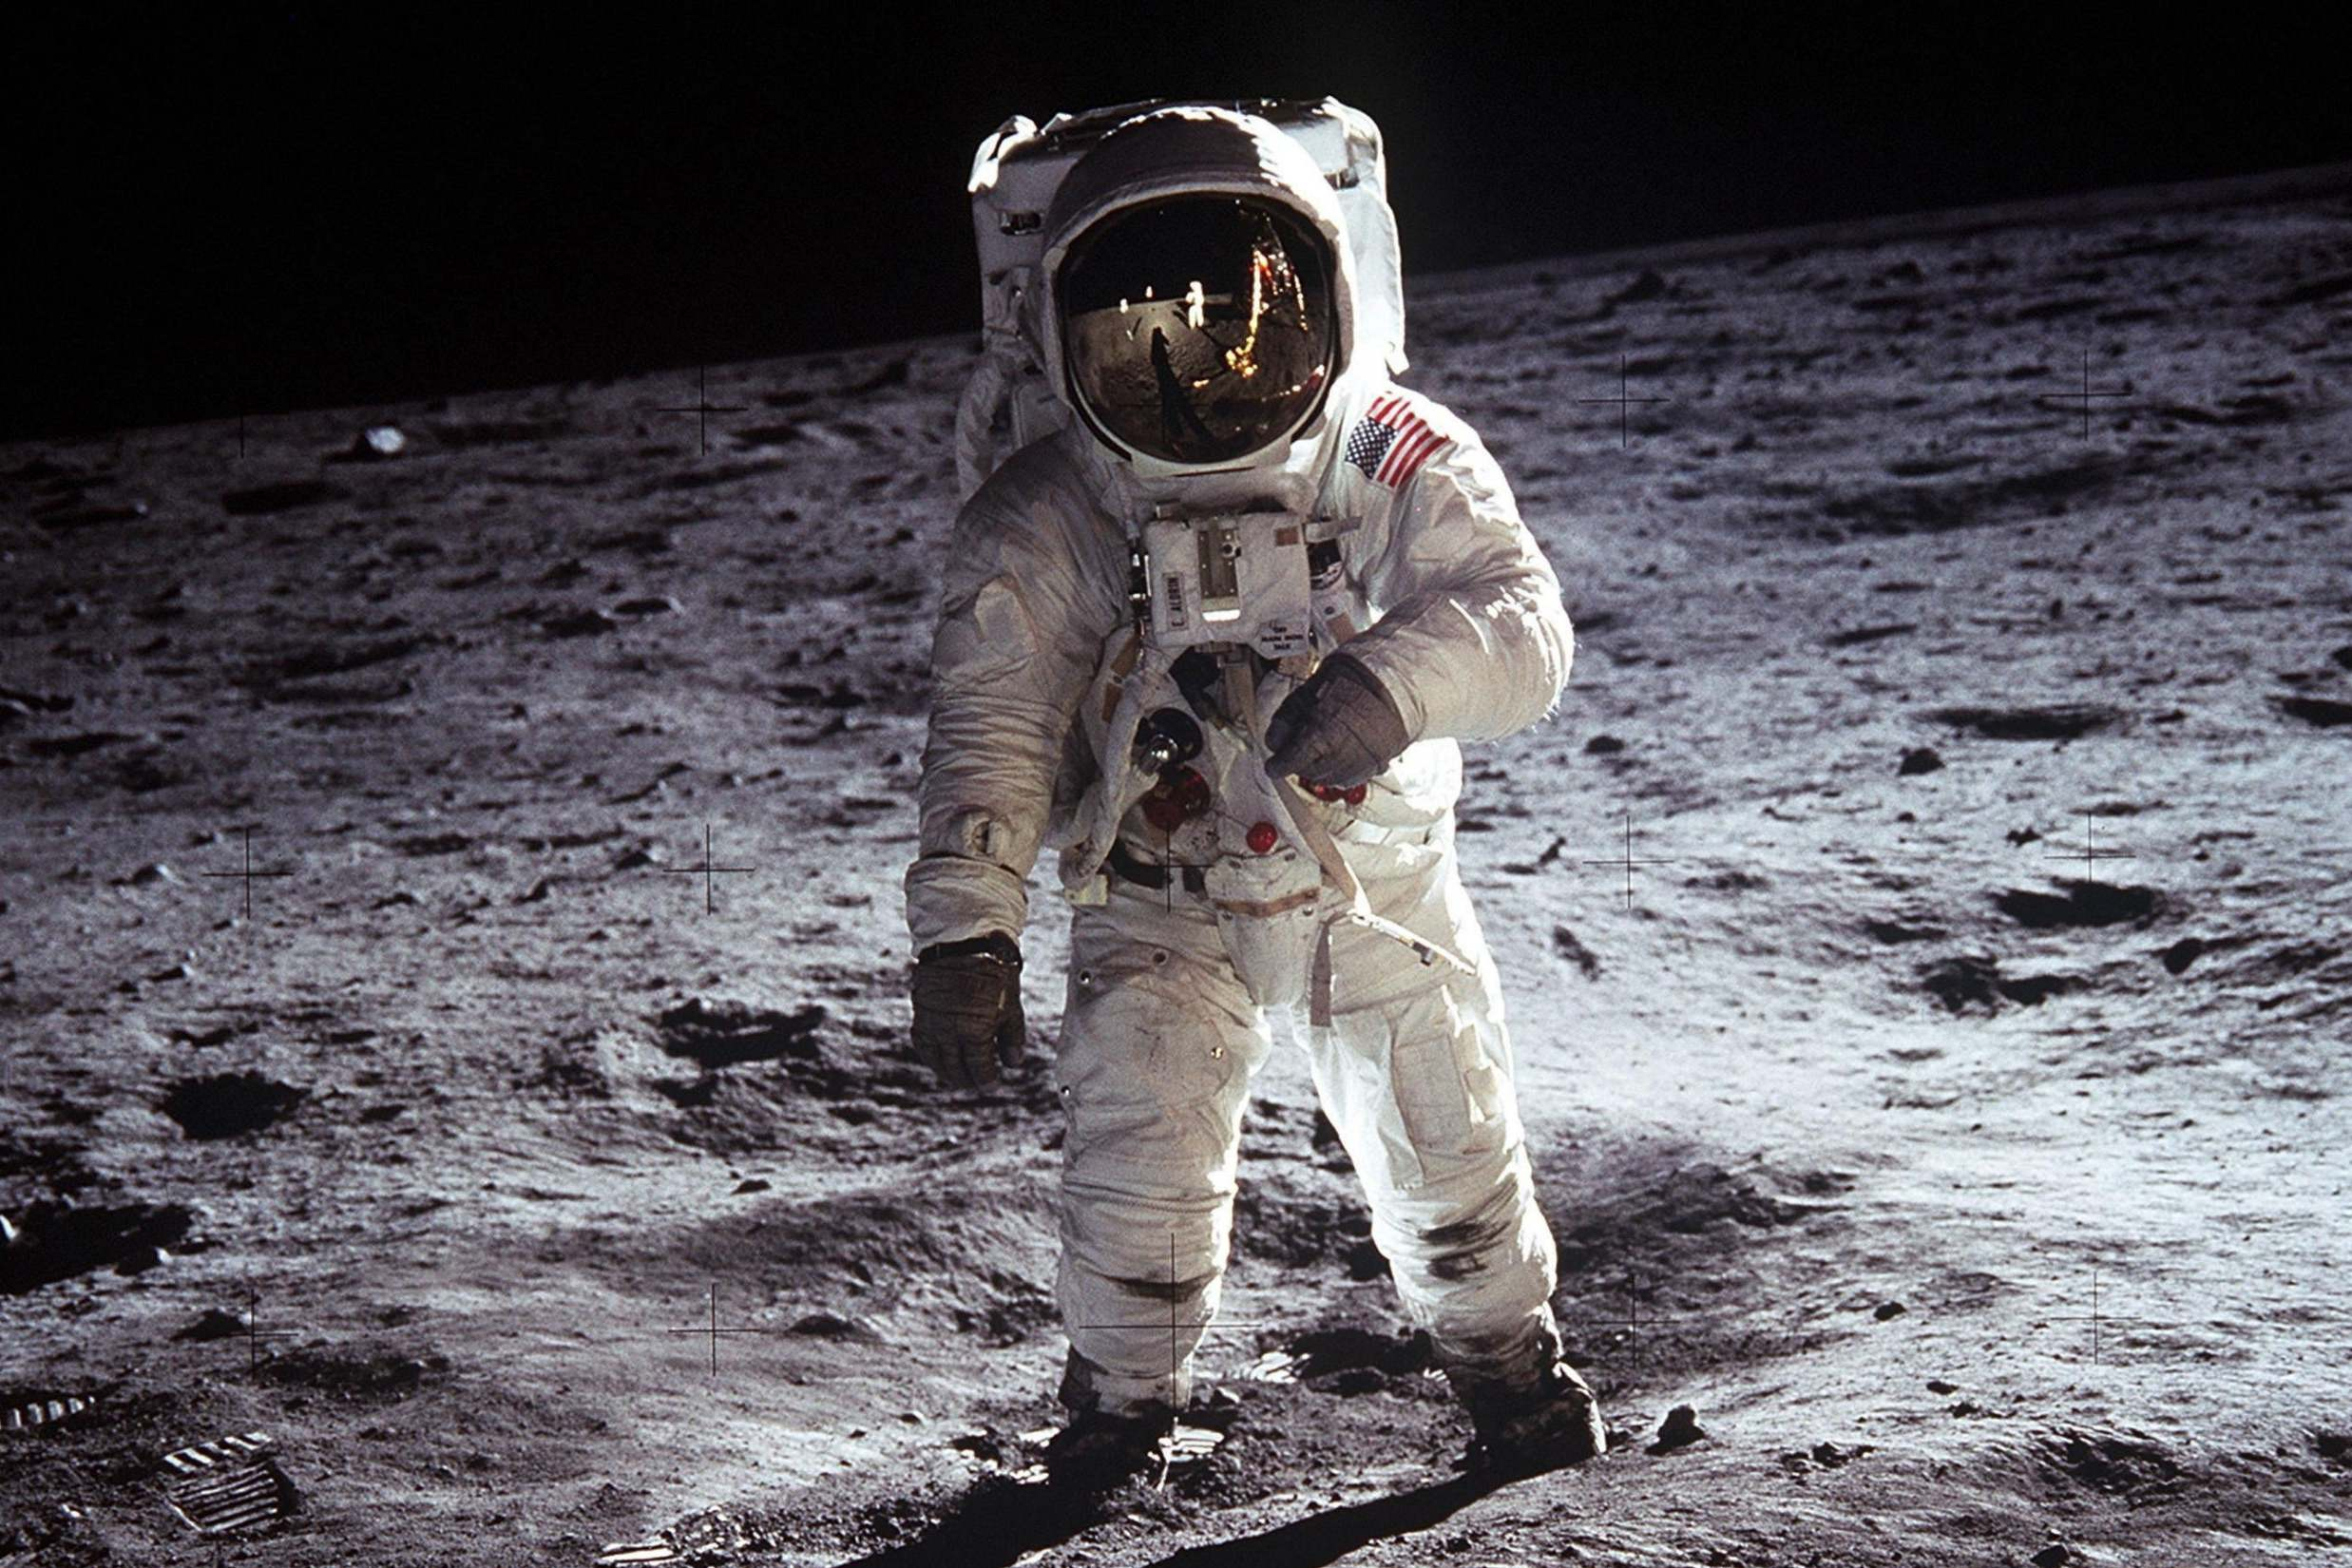 I despair over how little has changed in the world since the moon landing